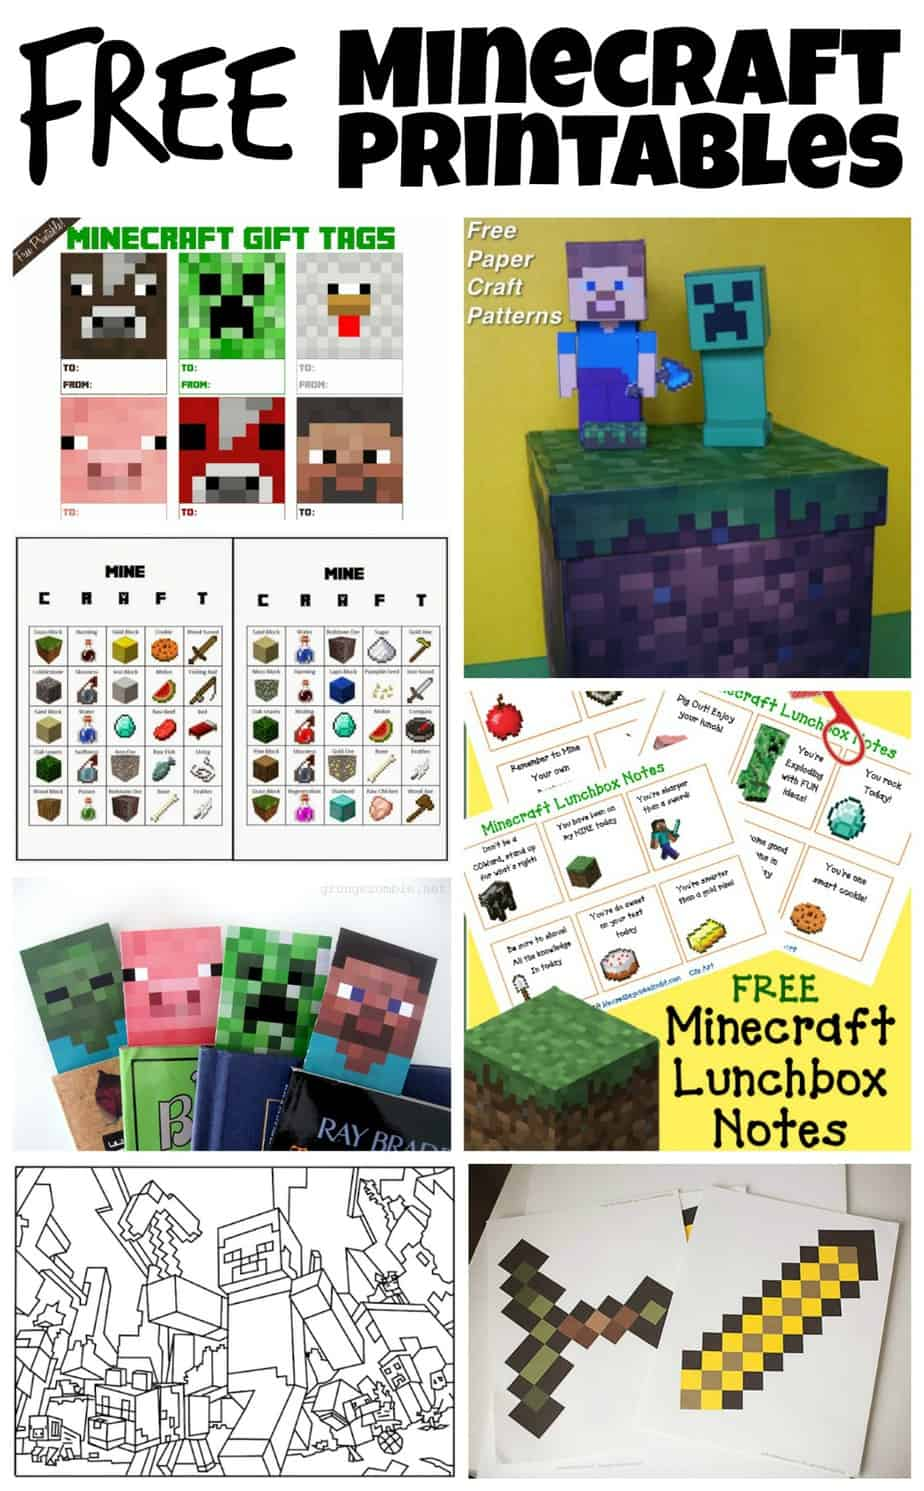 ve also rounded up some awesome Minecraft Printables that I found ...